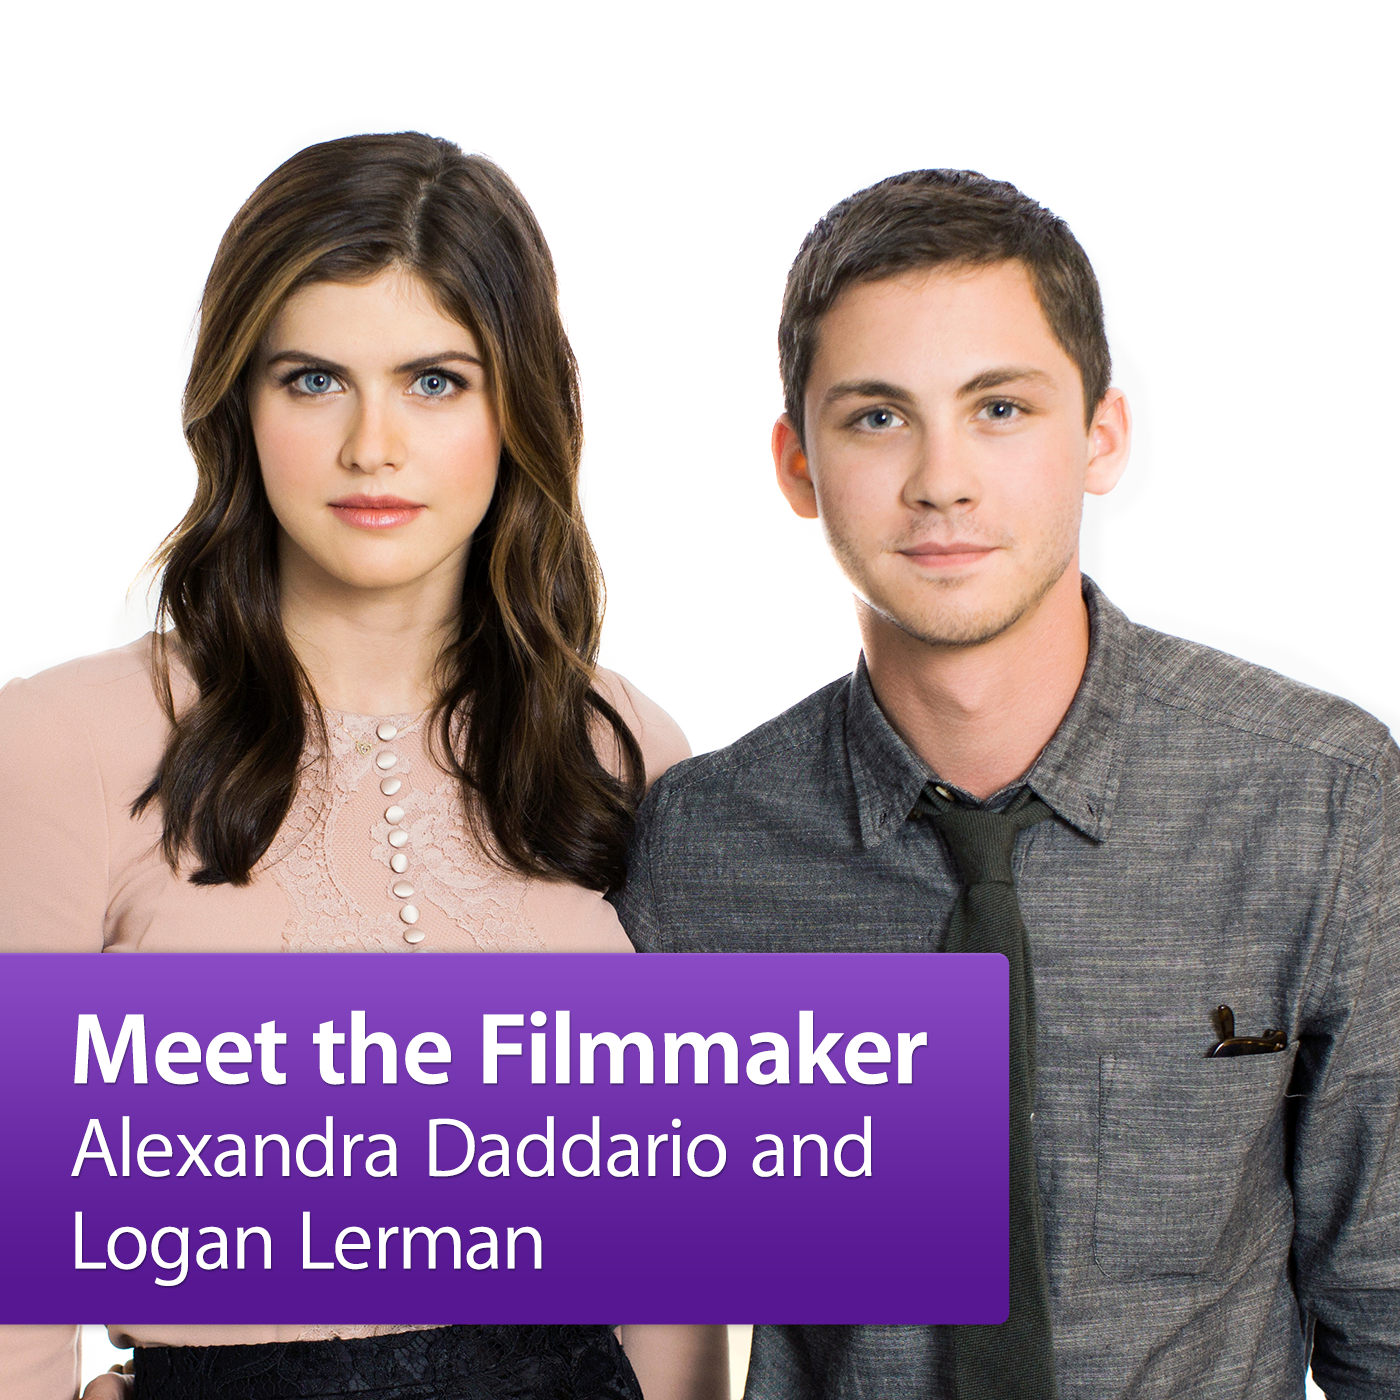 Logan Lerman and Alexandra Daddario: Meet the Filmmaker